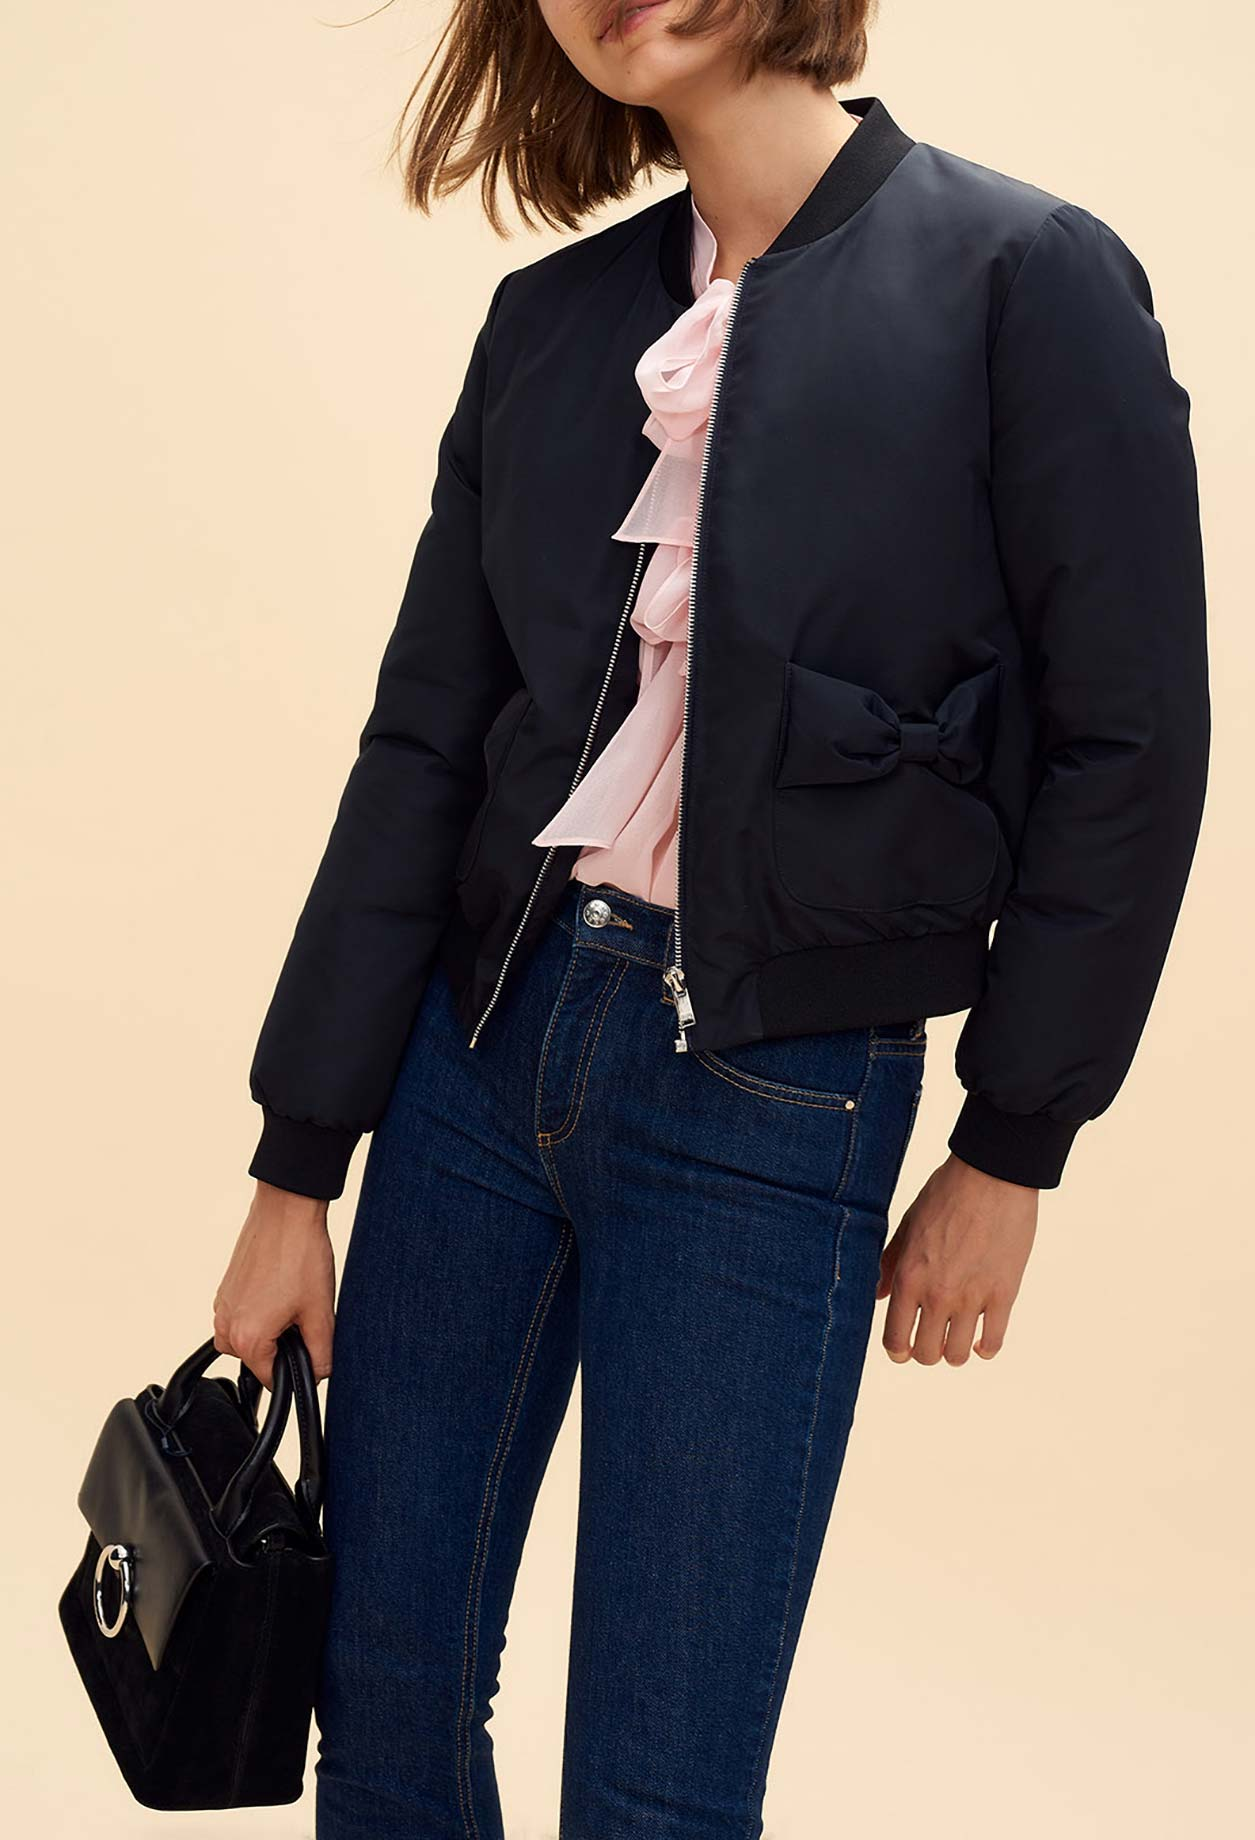 Bomber jacket with bow pocket details